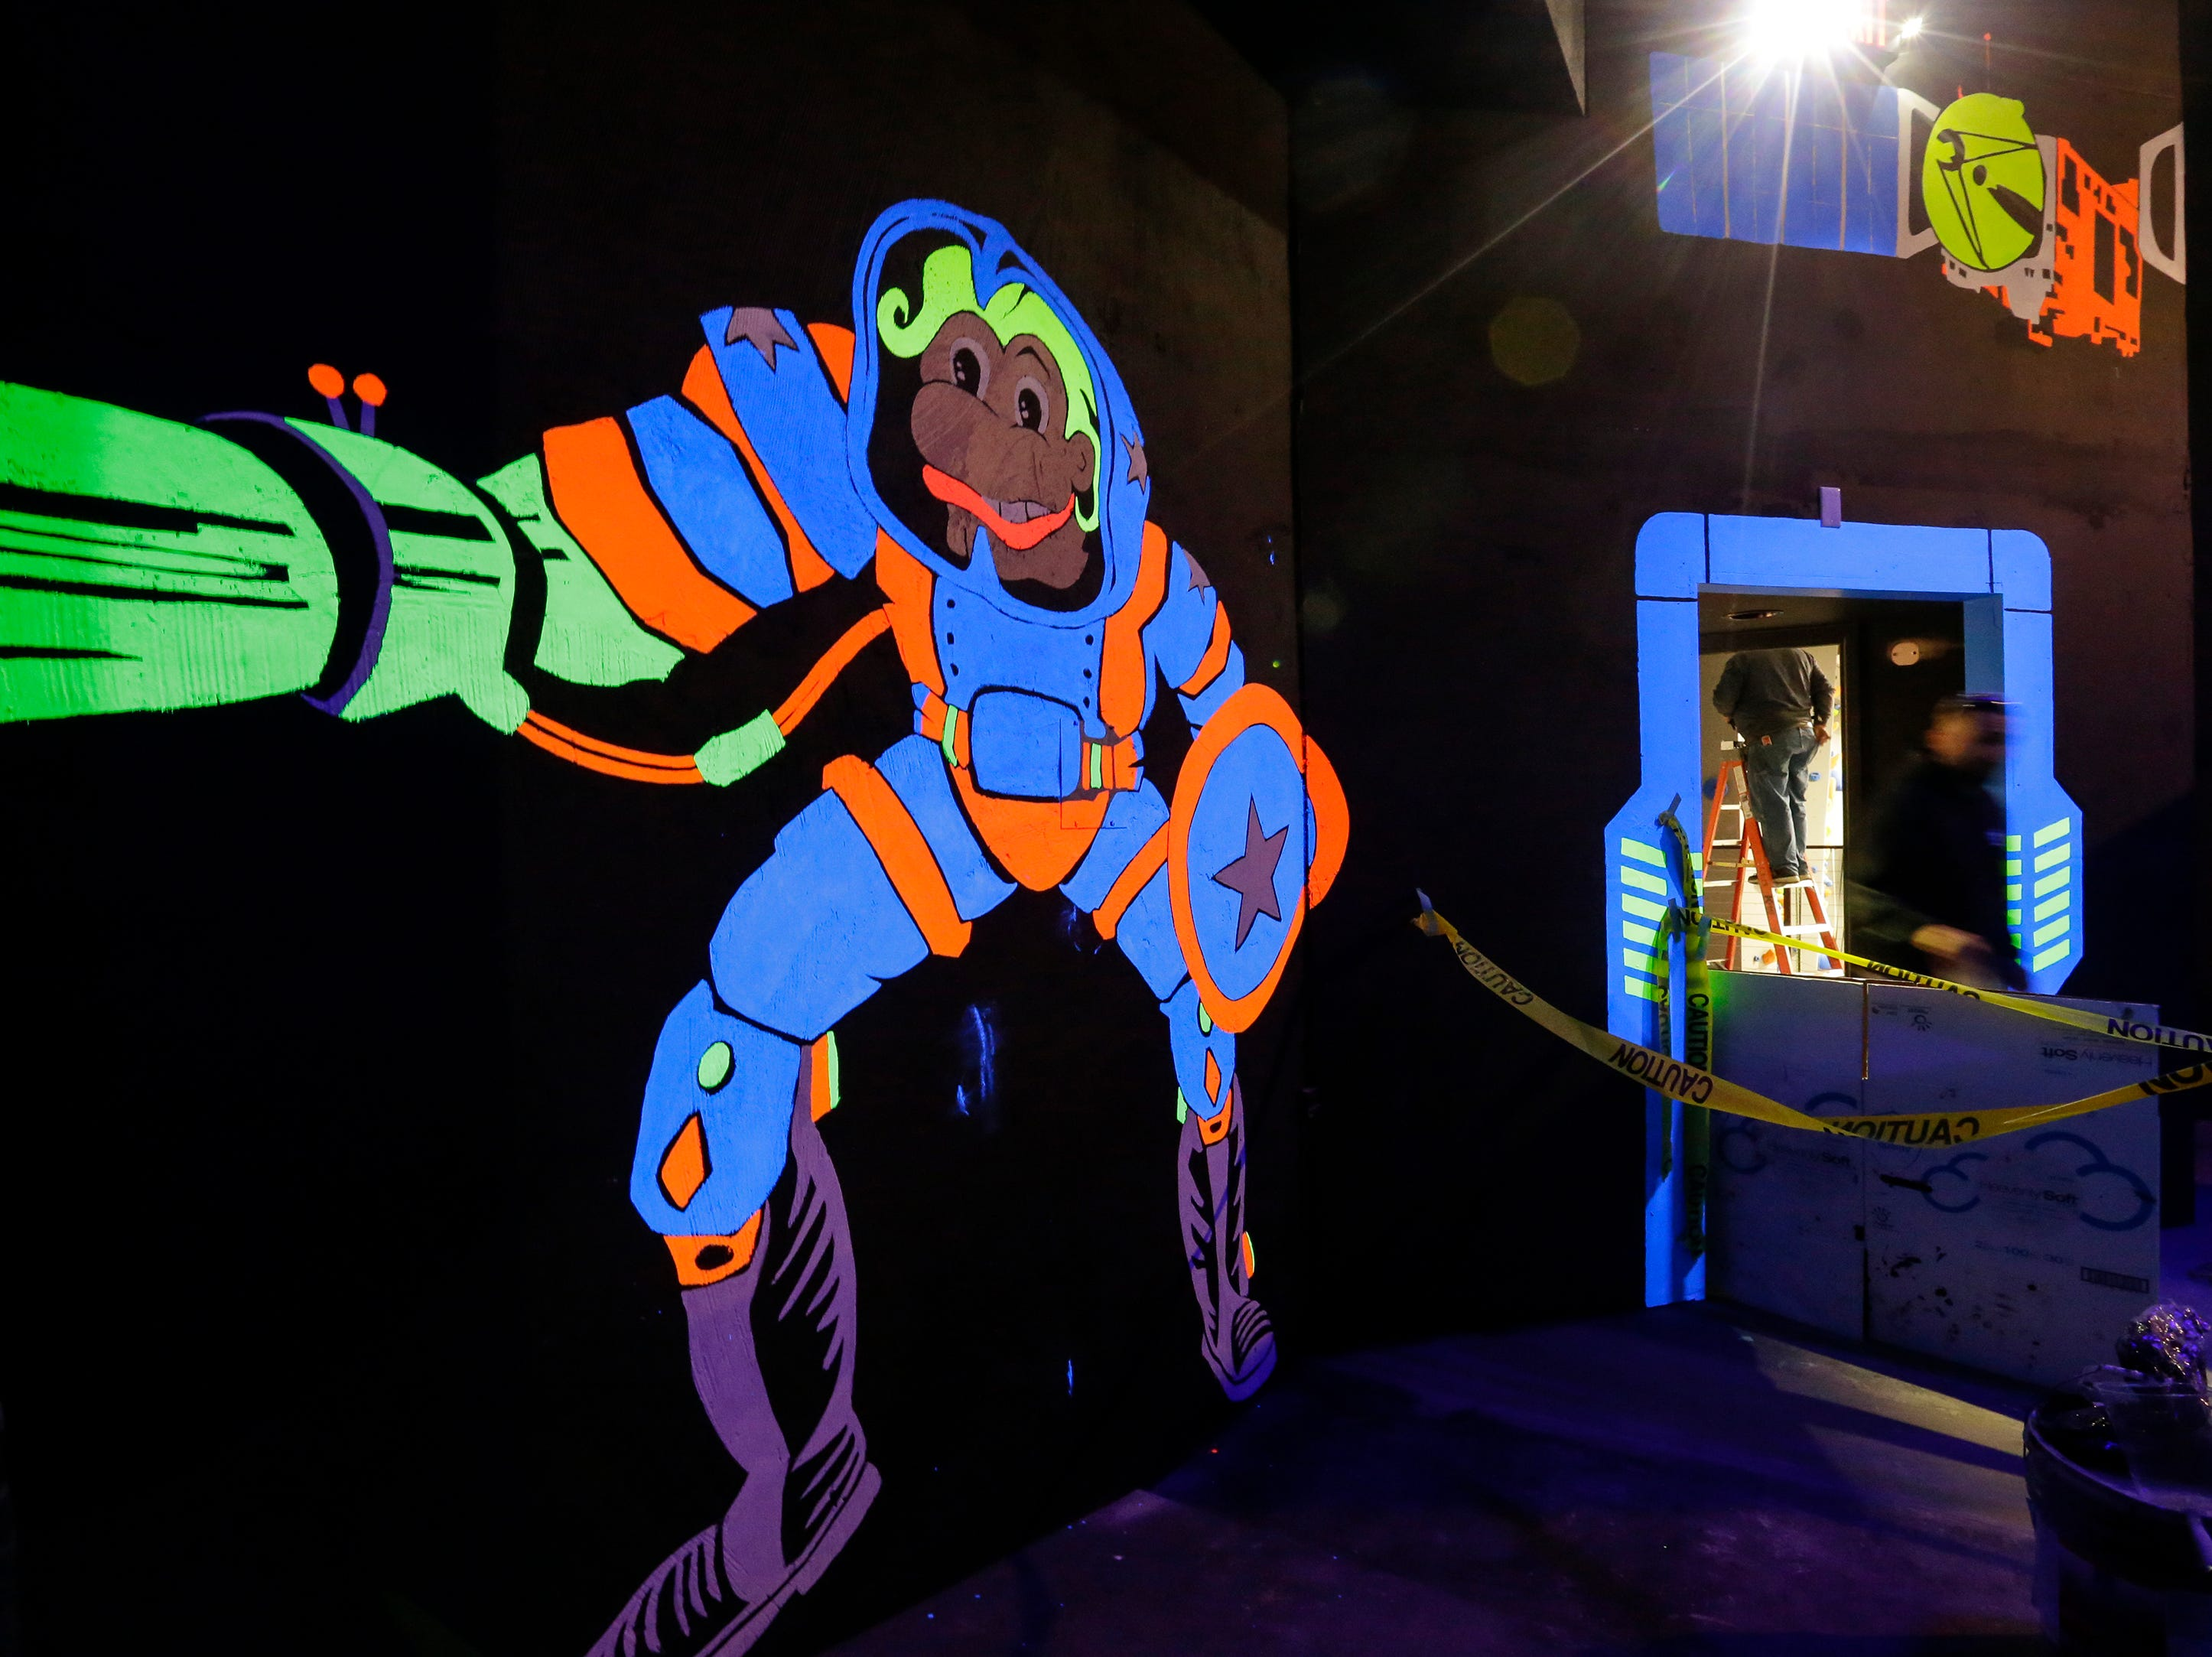 The laser tag room at Strand Adventures Wednesday, May 1, 2019, in Manitowoc, Wis. Joshua Clark/USA TODAY NETWORK-Wisconsin